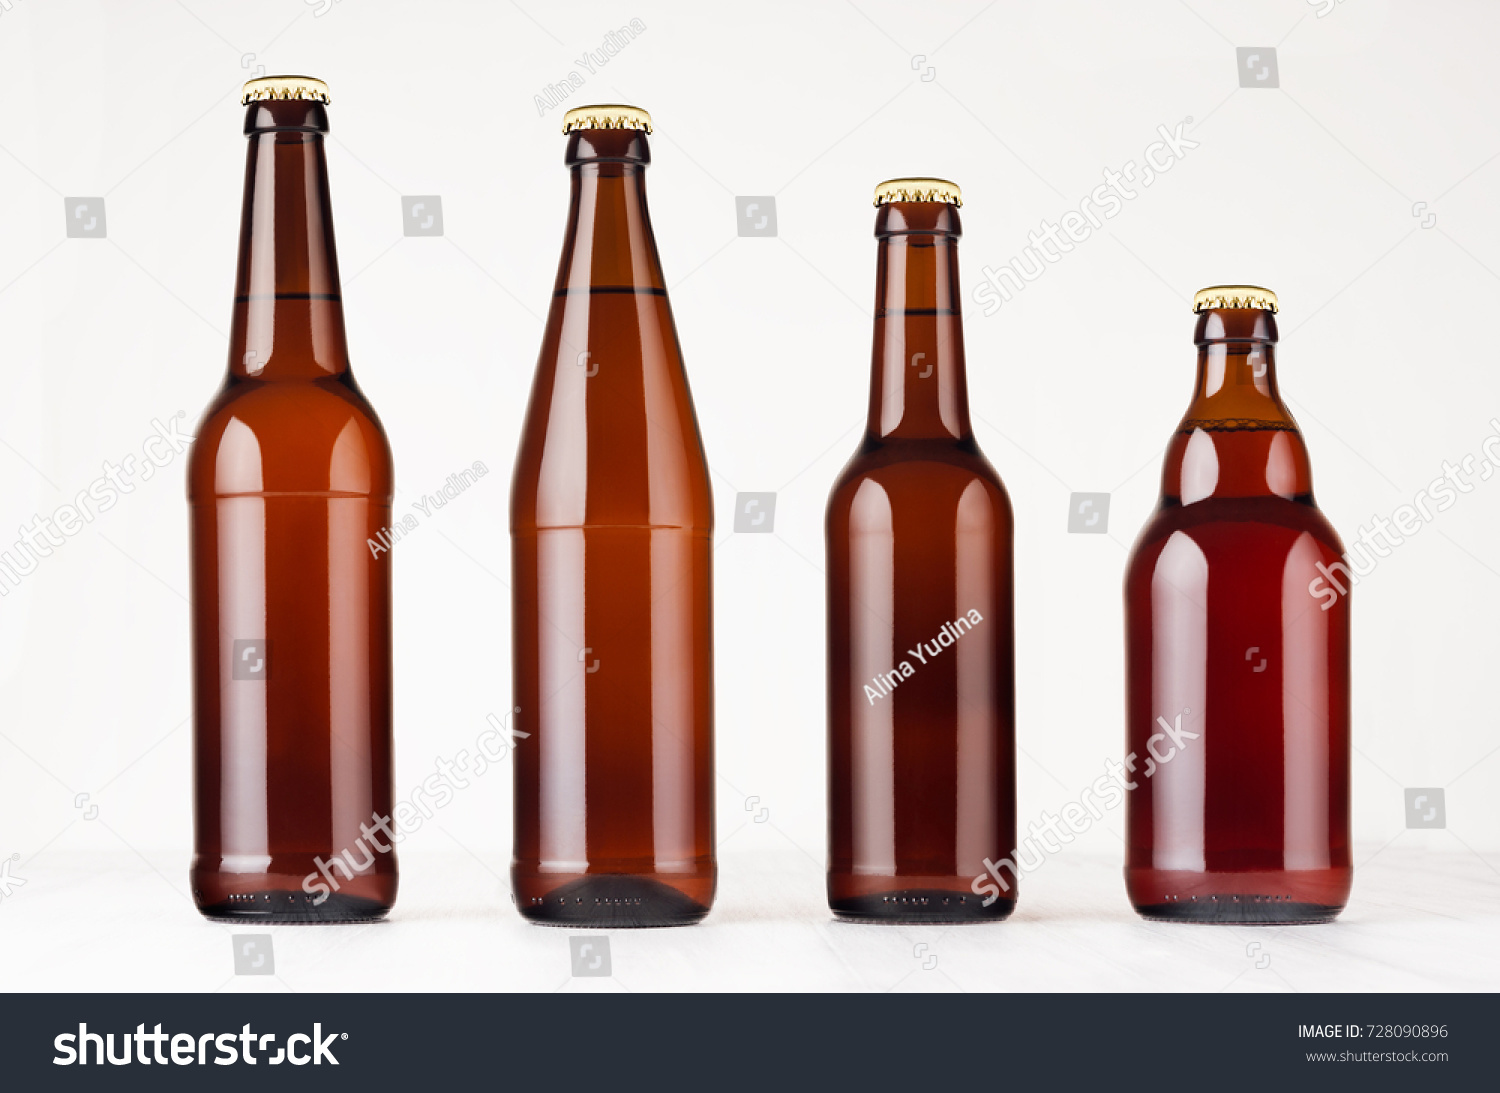 Collection different brown beer bottles, mockup. Template for advertising, design, branding identity on white wood table. #728090896